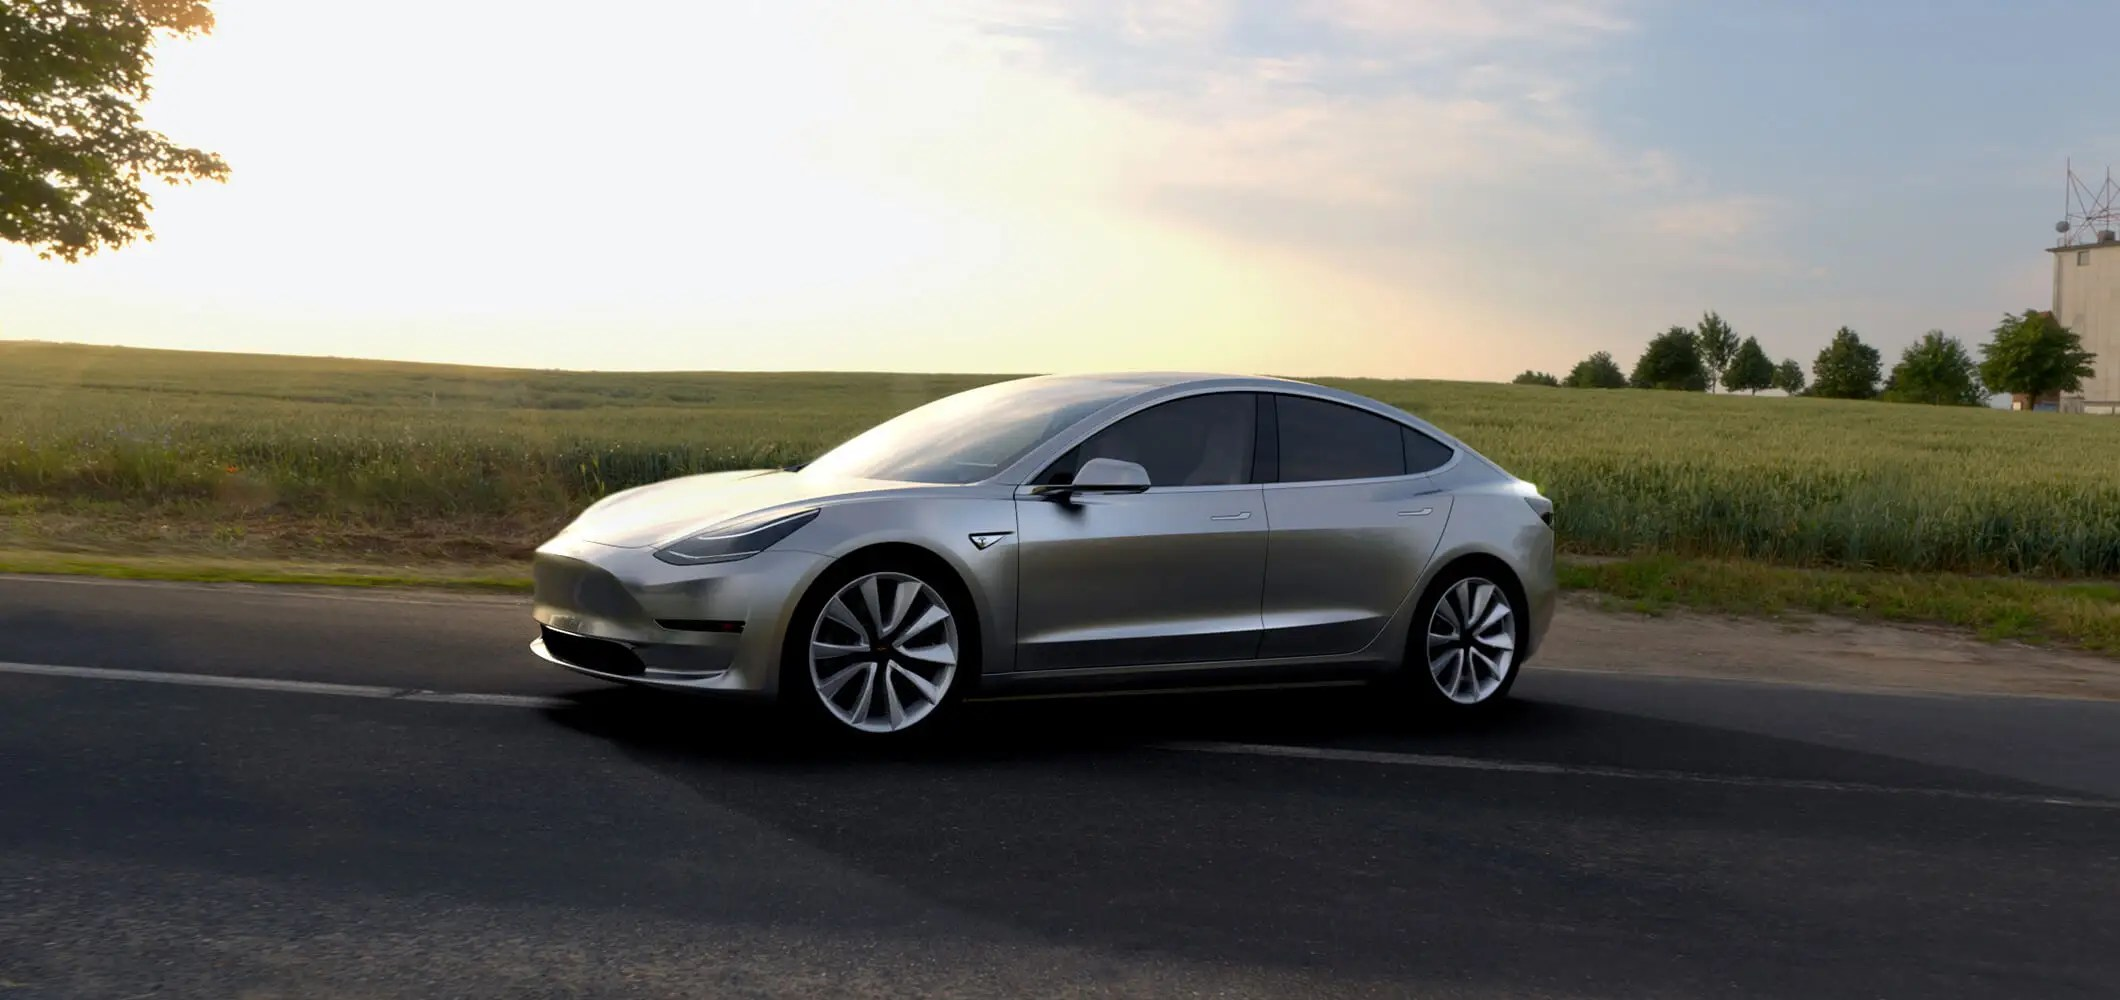 1. The first feature should make anyone excited: Tesla's Model 3 starts $35,000, and that's before federal tax exemptions.